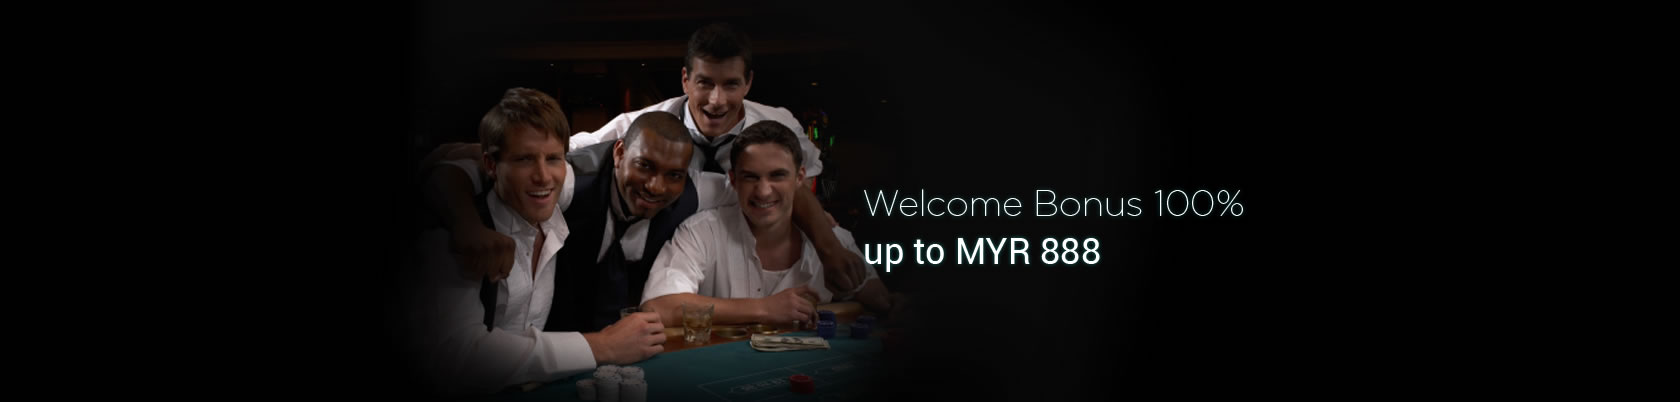 1Bet2u Welcome Bonus 100% up to MYR 888